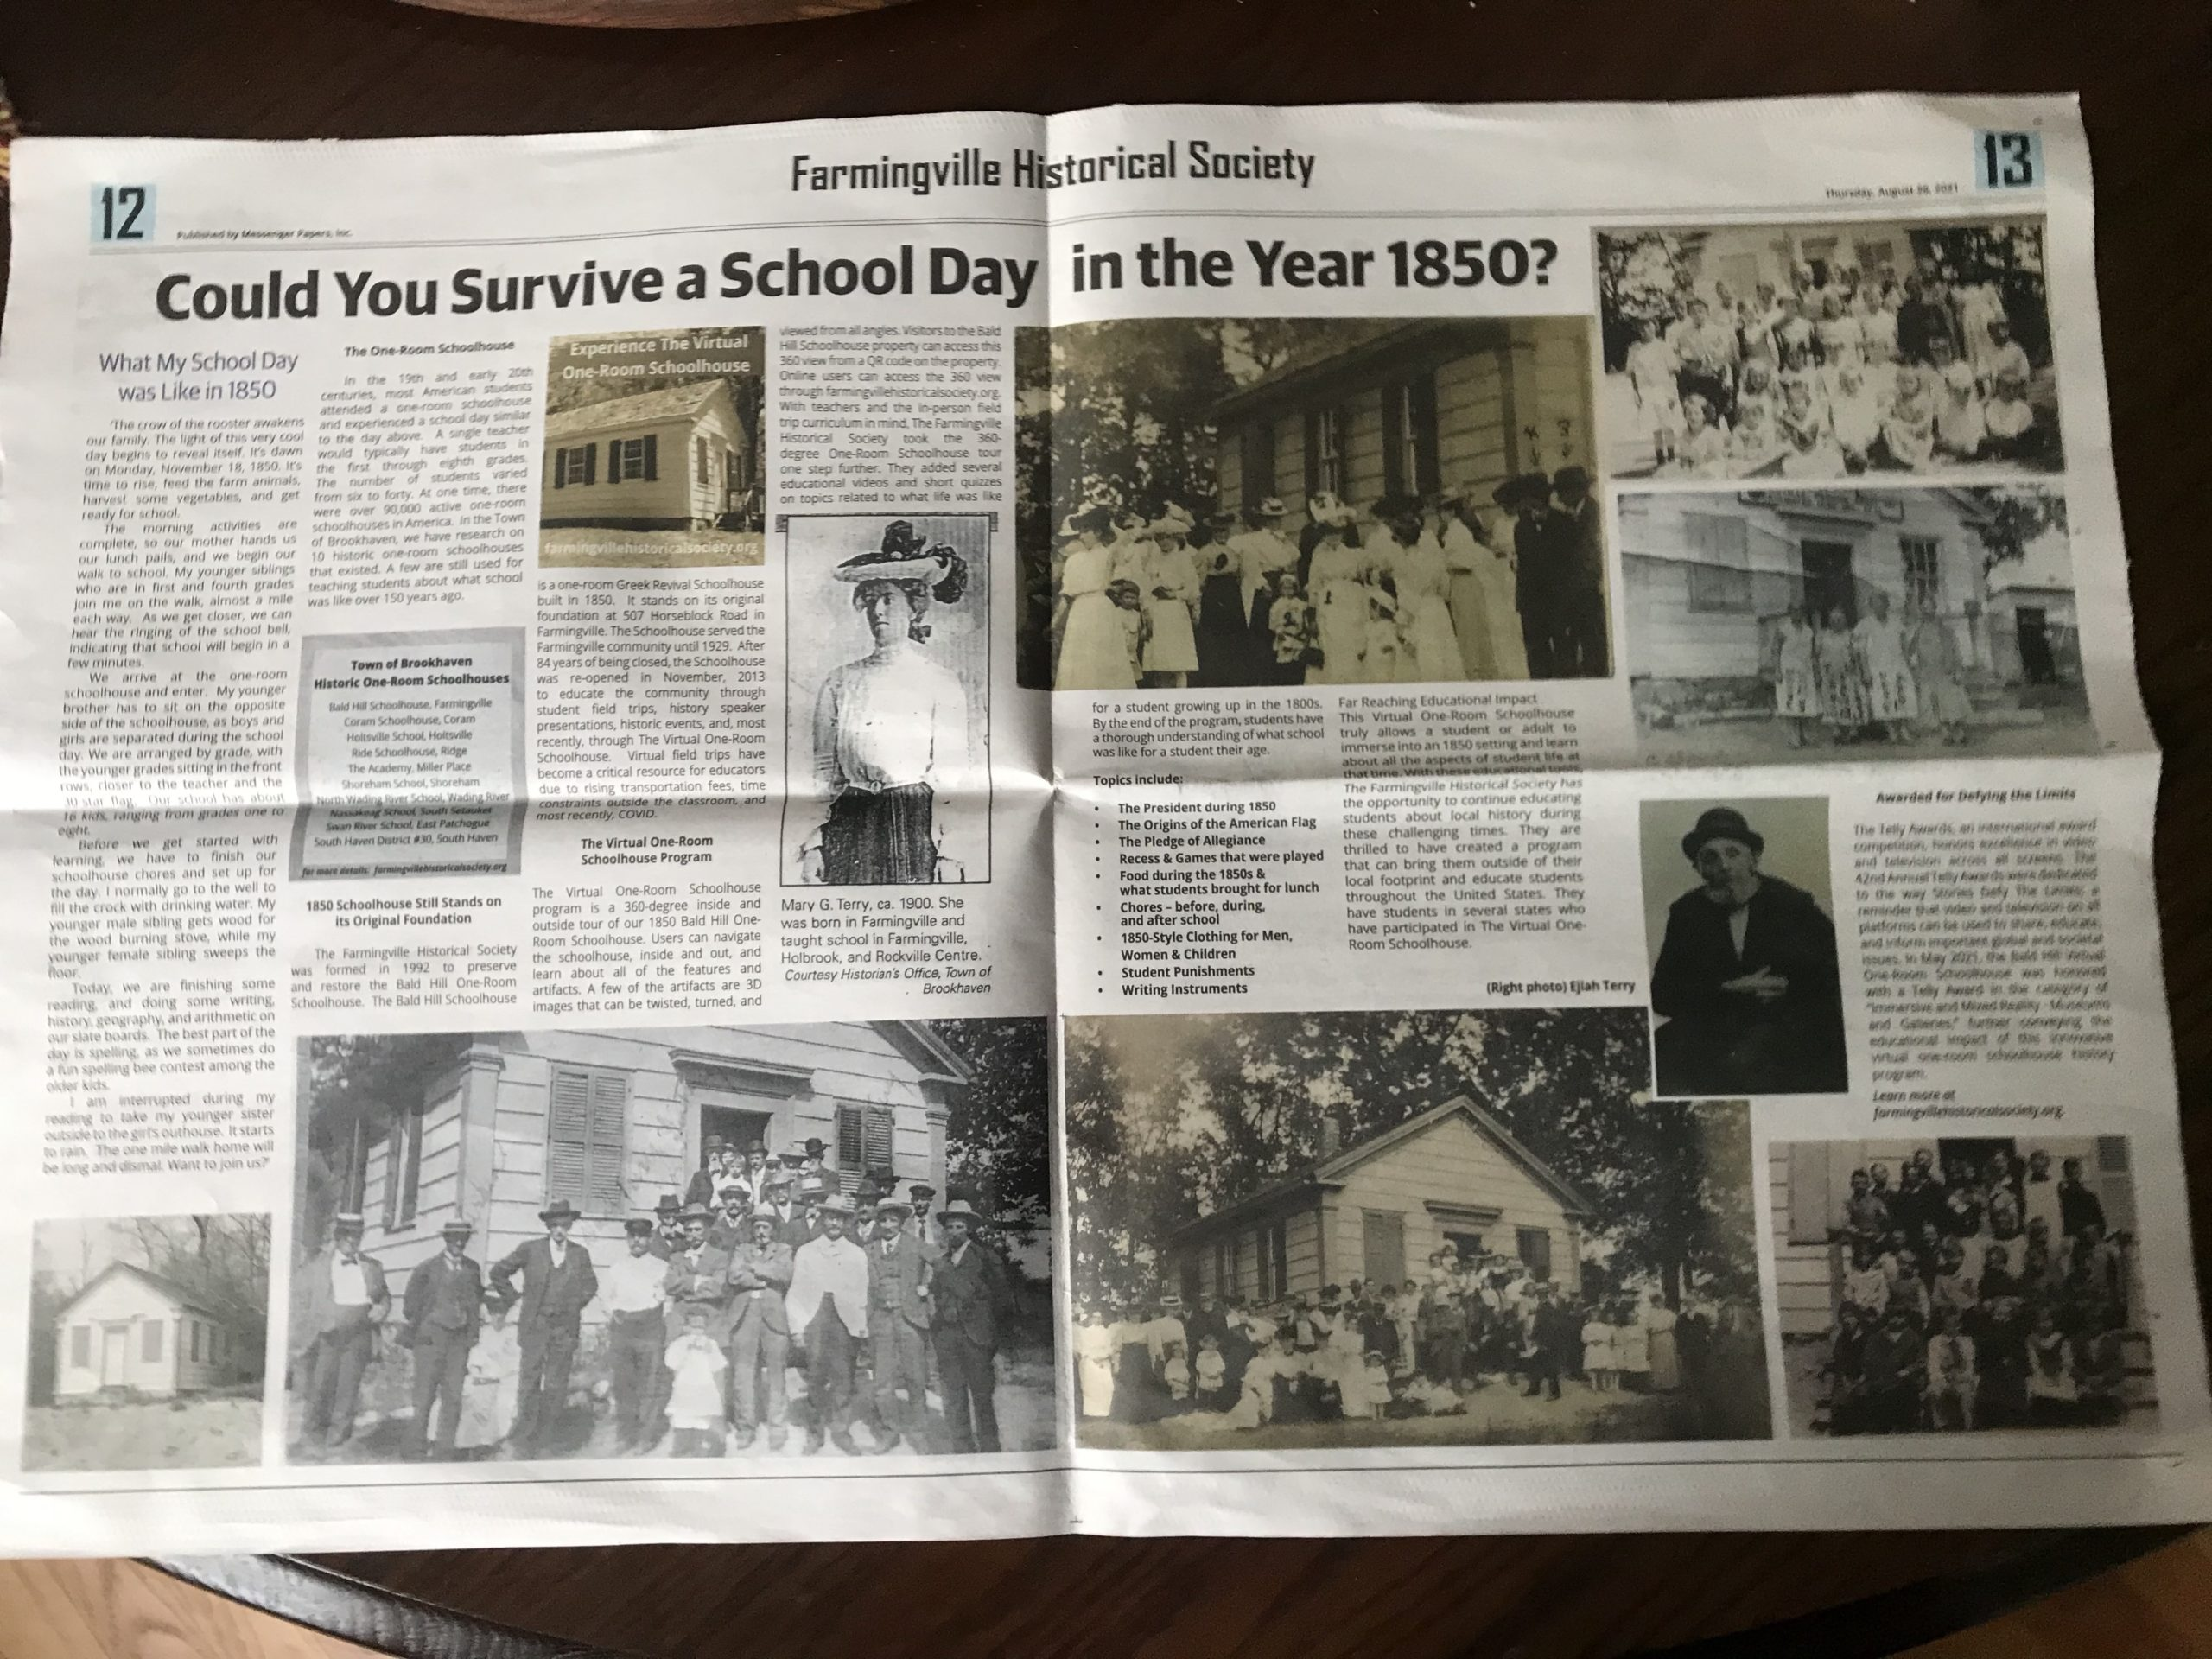 Could You Survive a School Day in the Year 1850?